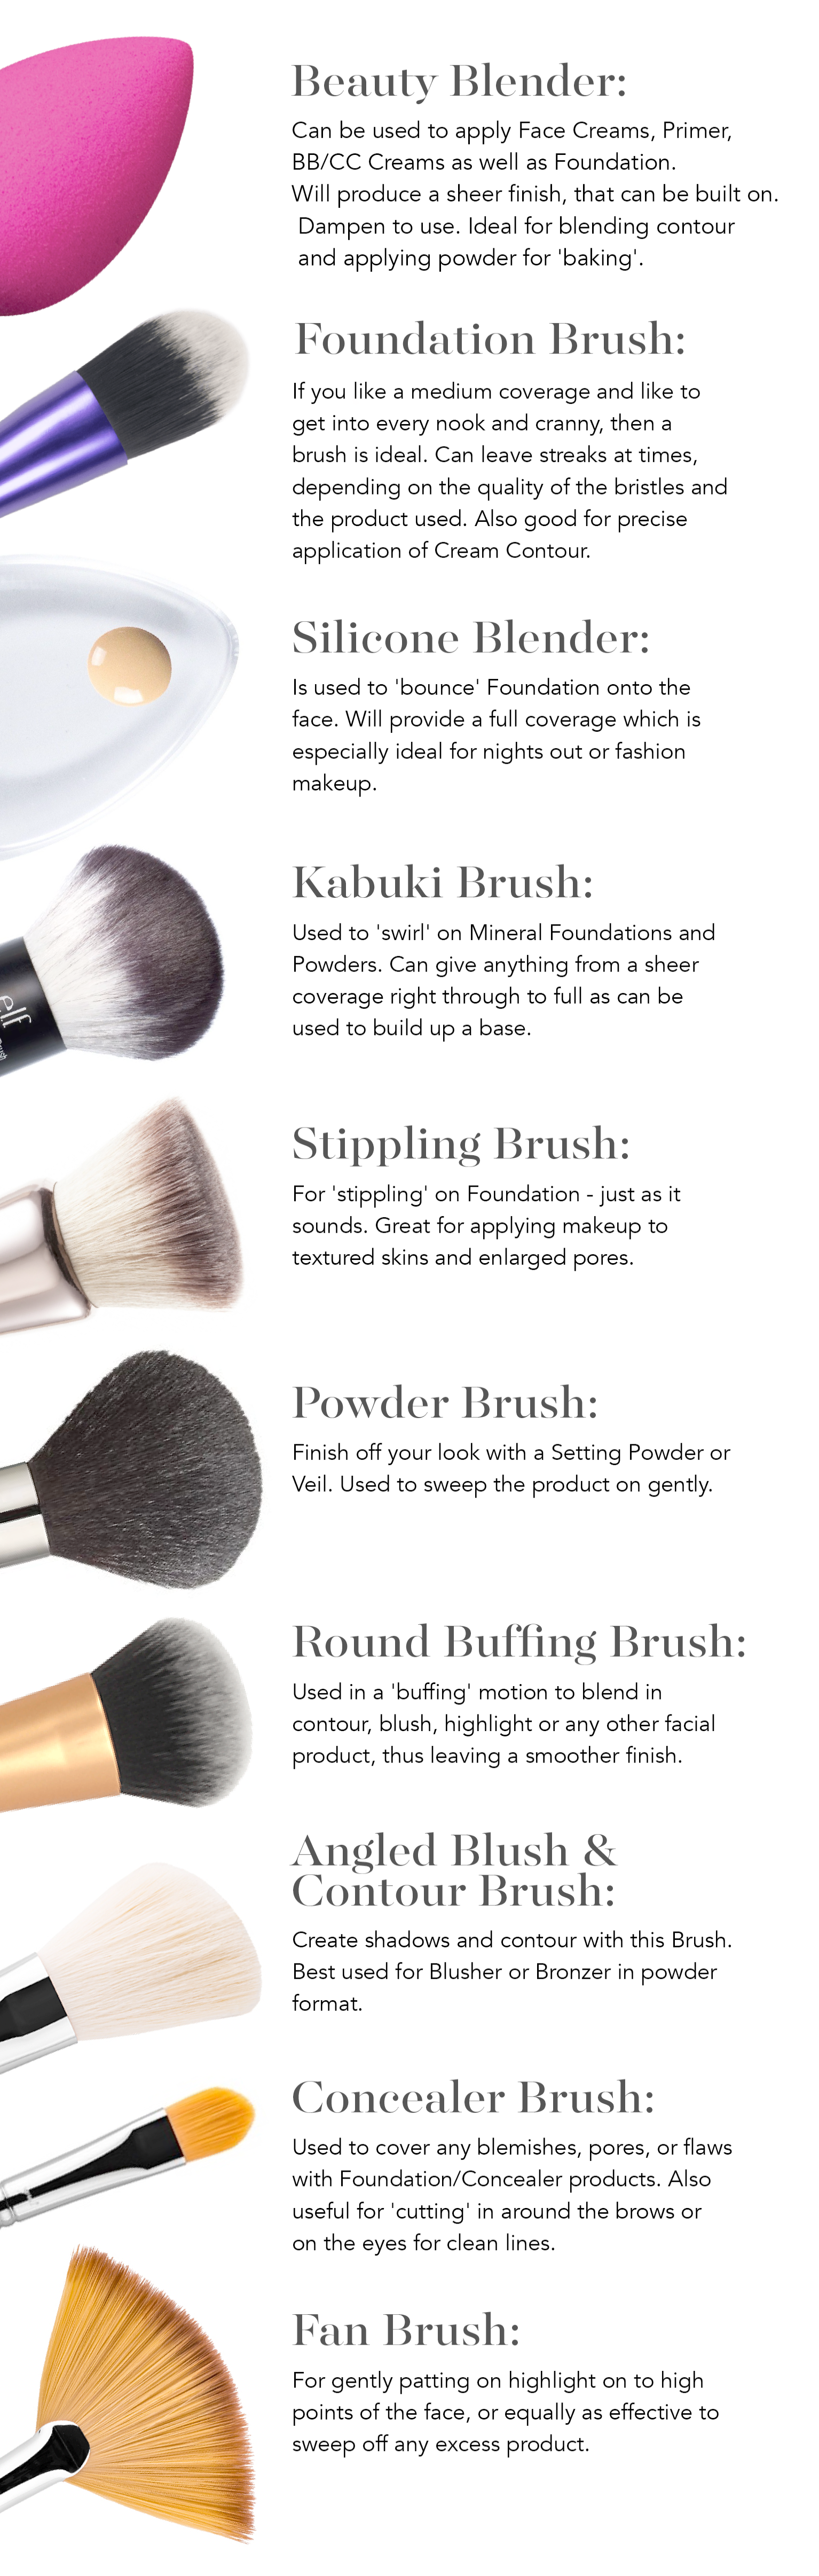 Makeup Accessories Pictures With Names Makeup Tools And Equipment List Makeup Brushes Guide Top Makeup Products Skin Makeup